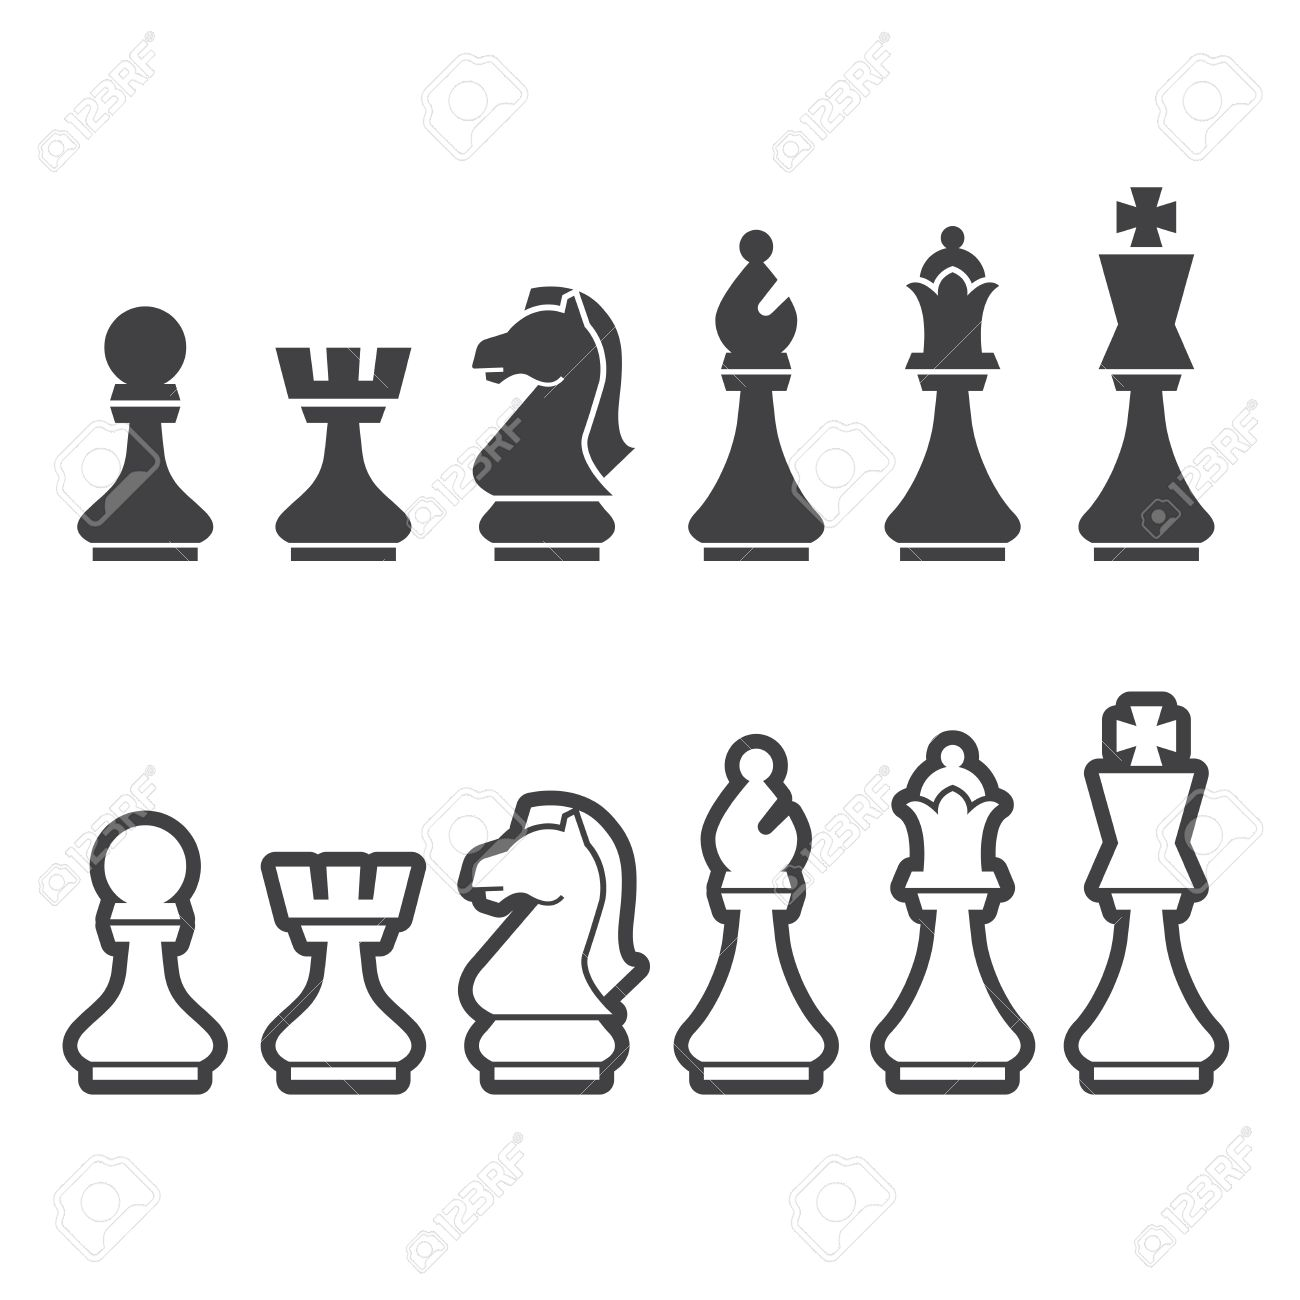 Chess Pieces Stock Photos Royalty Free Images Checkmate Diagram Puzzle From The Icon Illustration